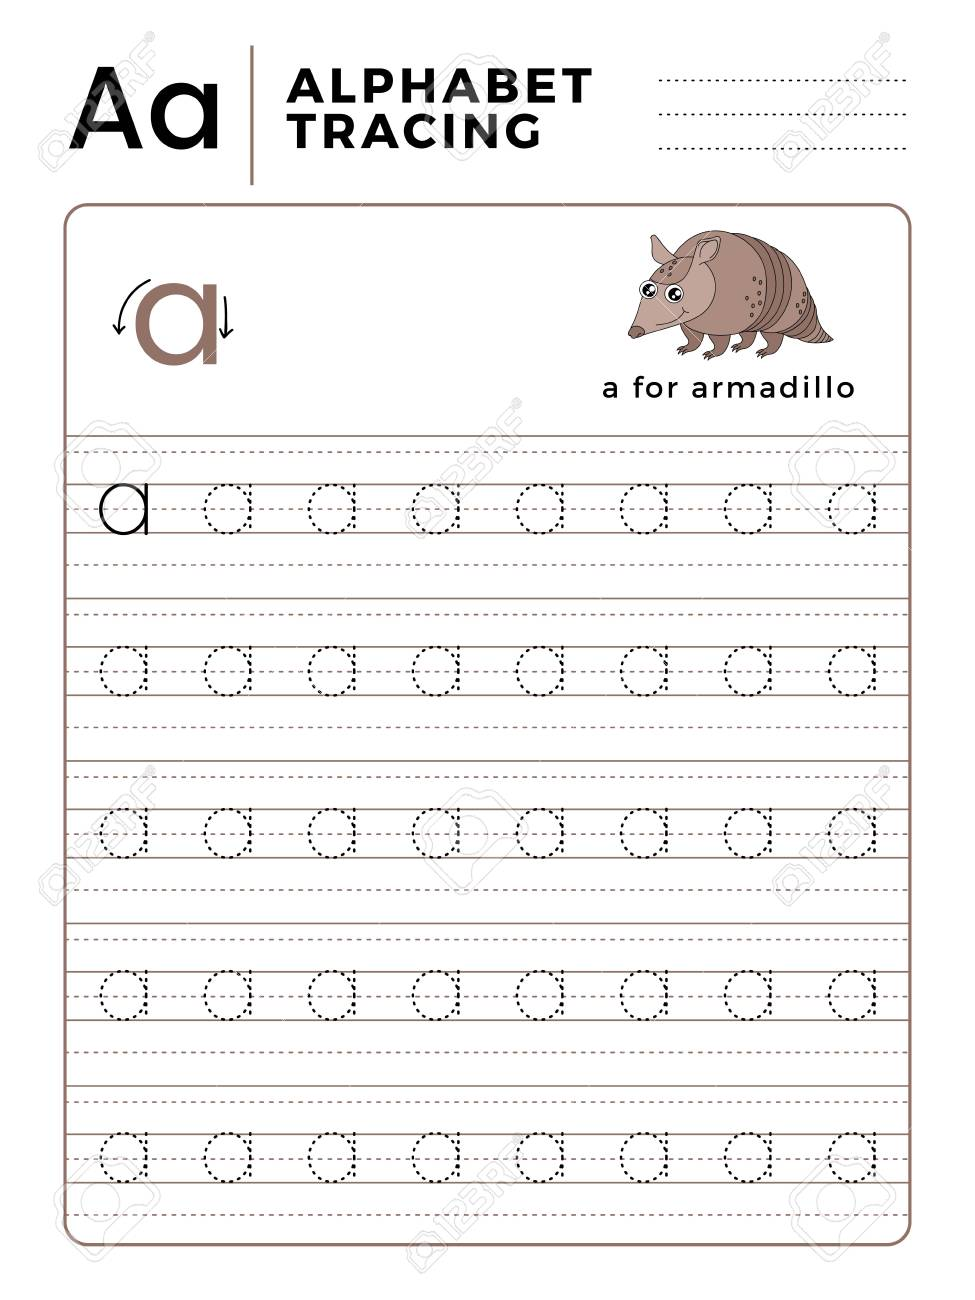 Letter A Alphabet Tracing Book with Example and Funny Armadillo..